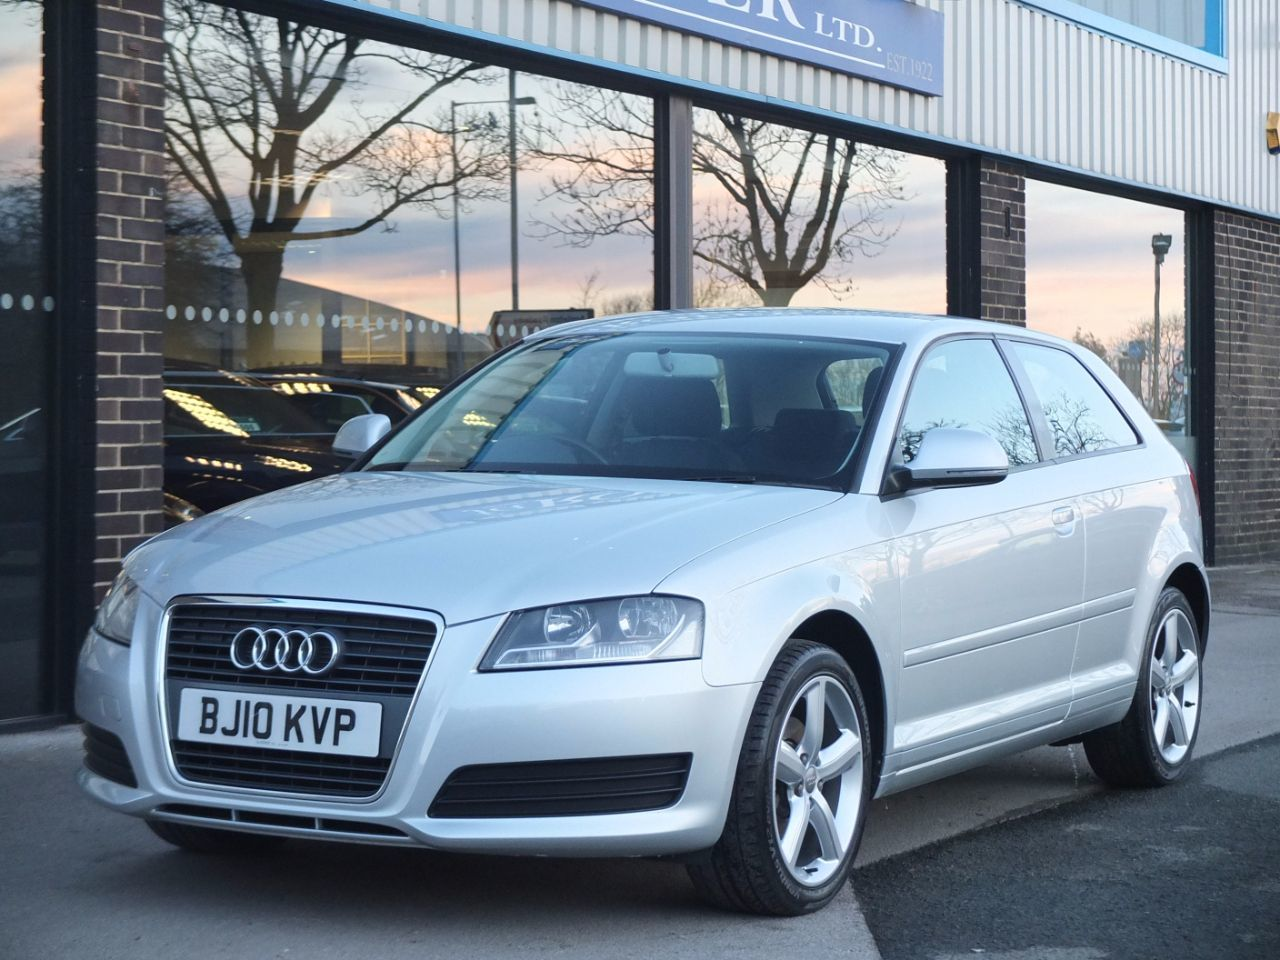 Audi A3 1.6 Technik 3 door Hatchback Petrol Ice Silver MetallicAudi A3 1.6 Technik 3 door Hatchback Petrol Ice Silver Metallic at fa Roper Ltd Bradford